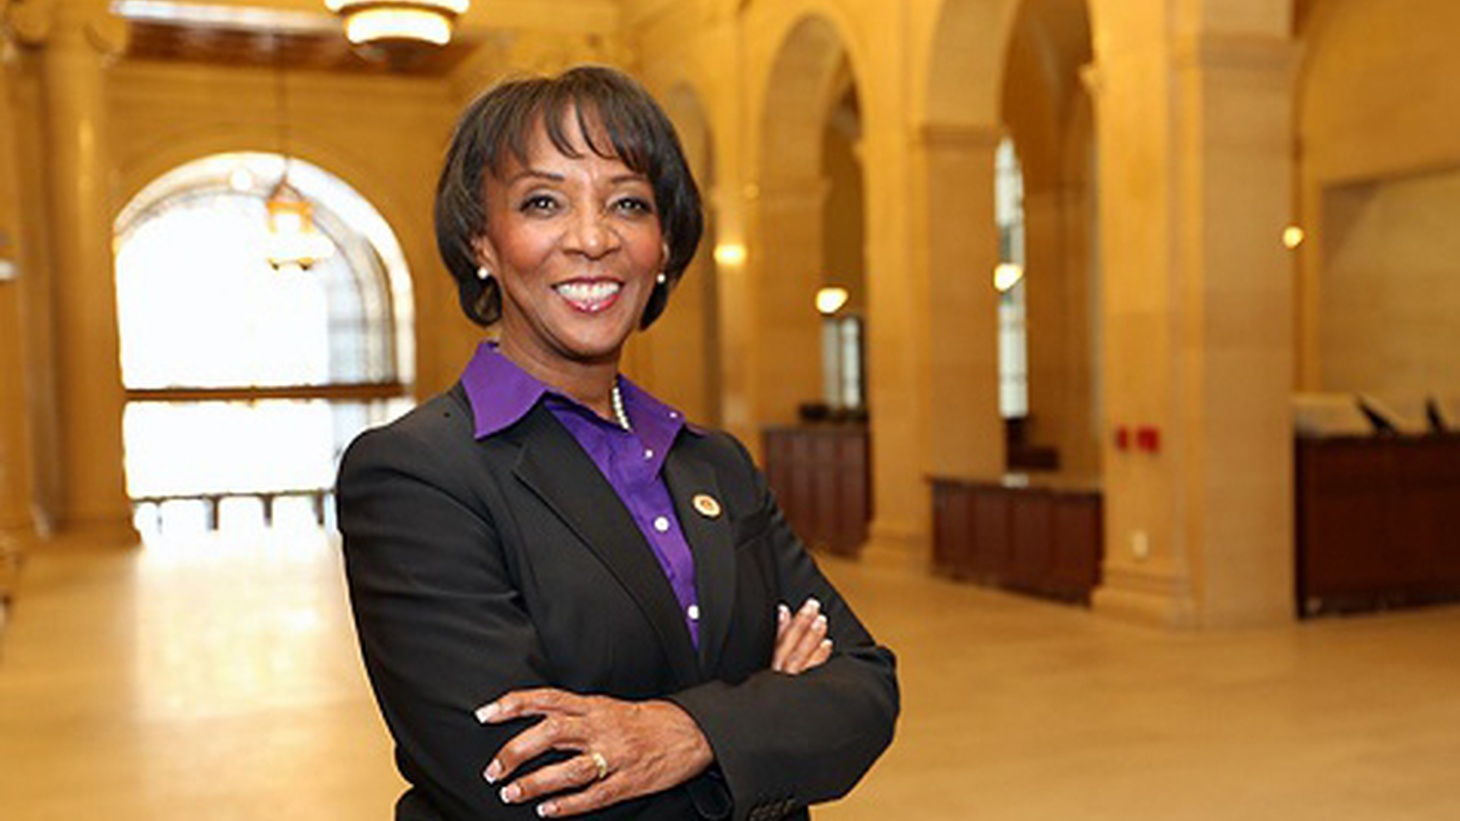 LA County District Attorney Jackie Lacey is running unopposed this year. She talks to Warren Olney about her last four years and what's ahead.